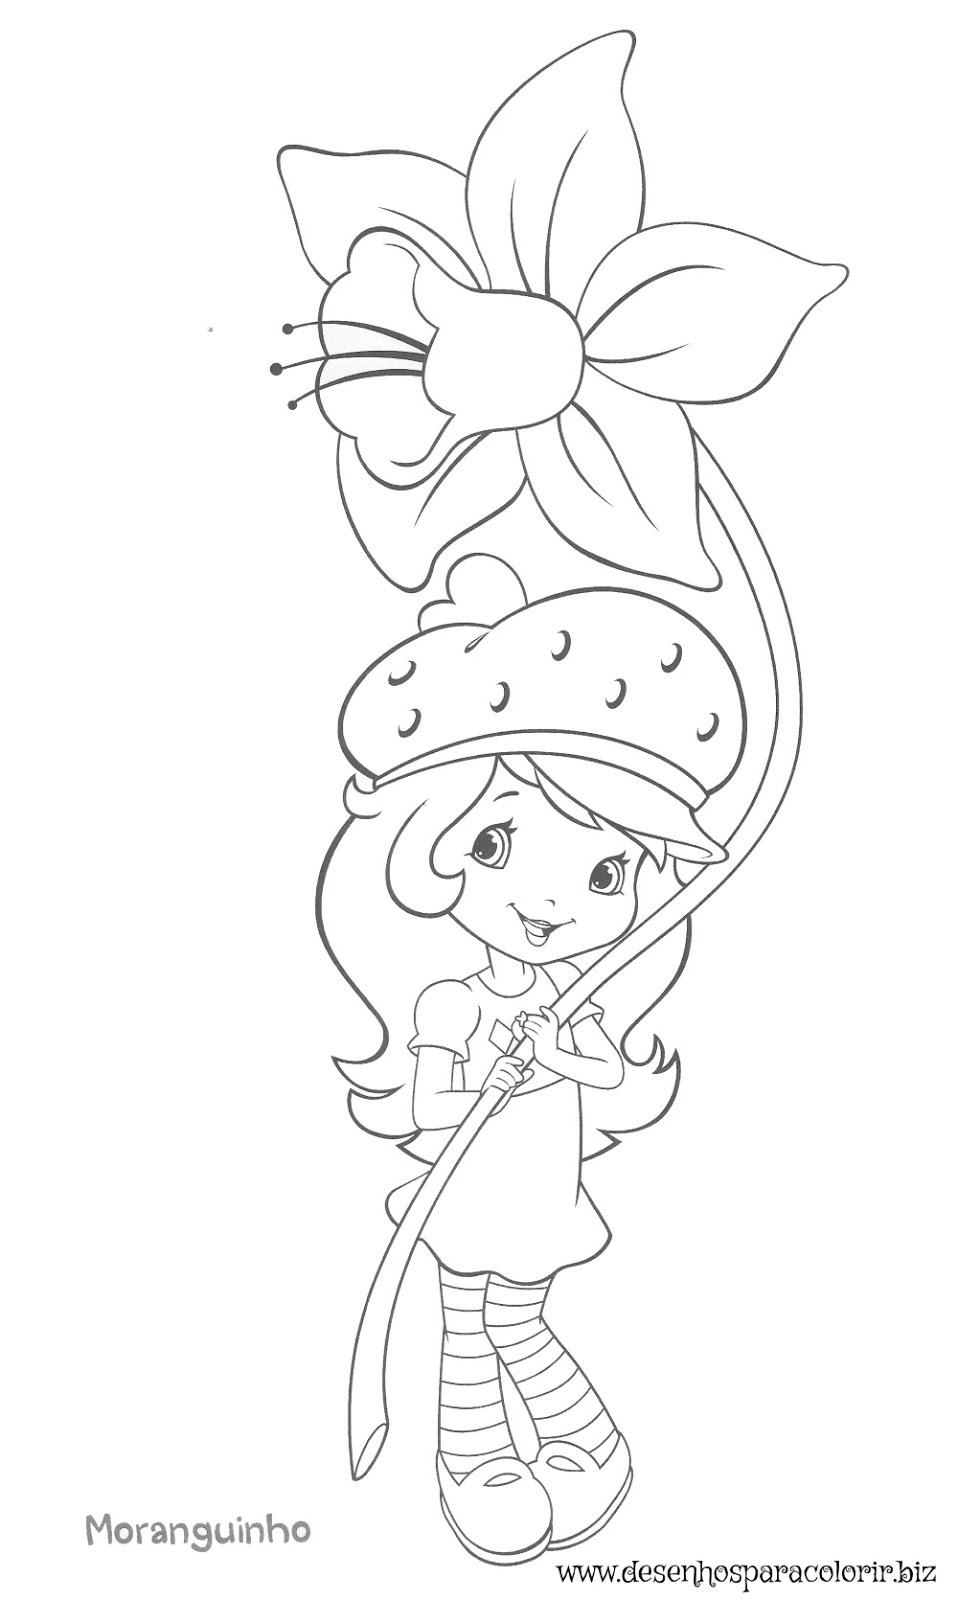 Noddy Coloring Pages 26 Coloring Pages Coloring Pictures Online Coloring Pages